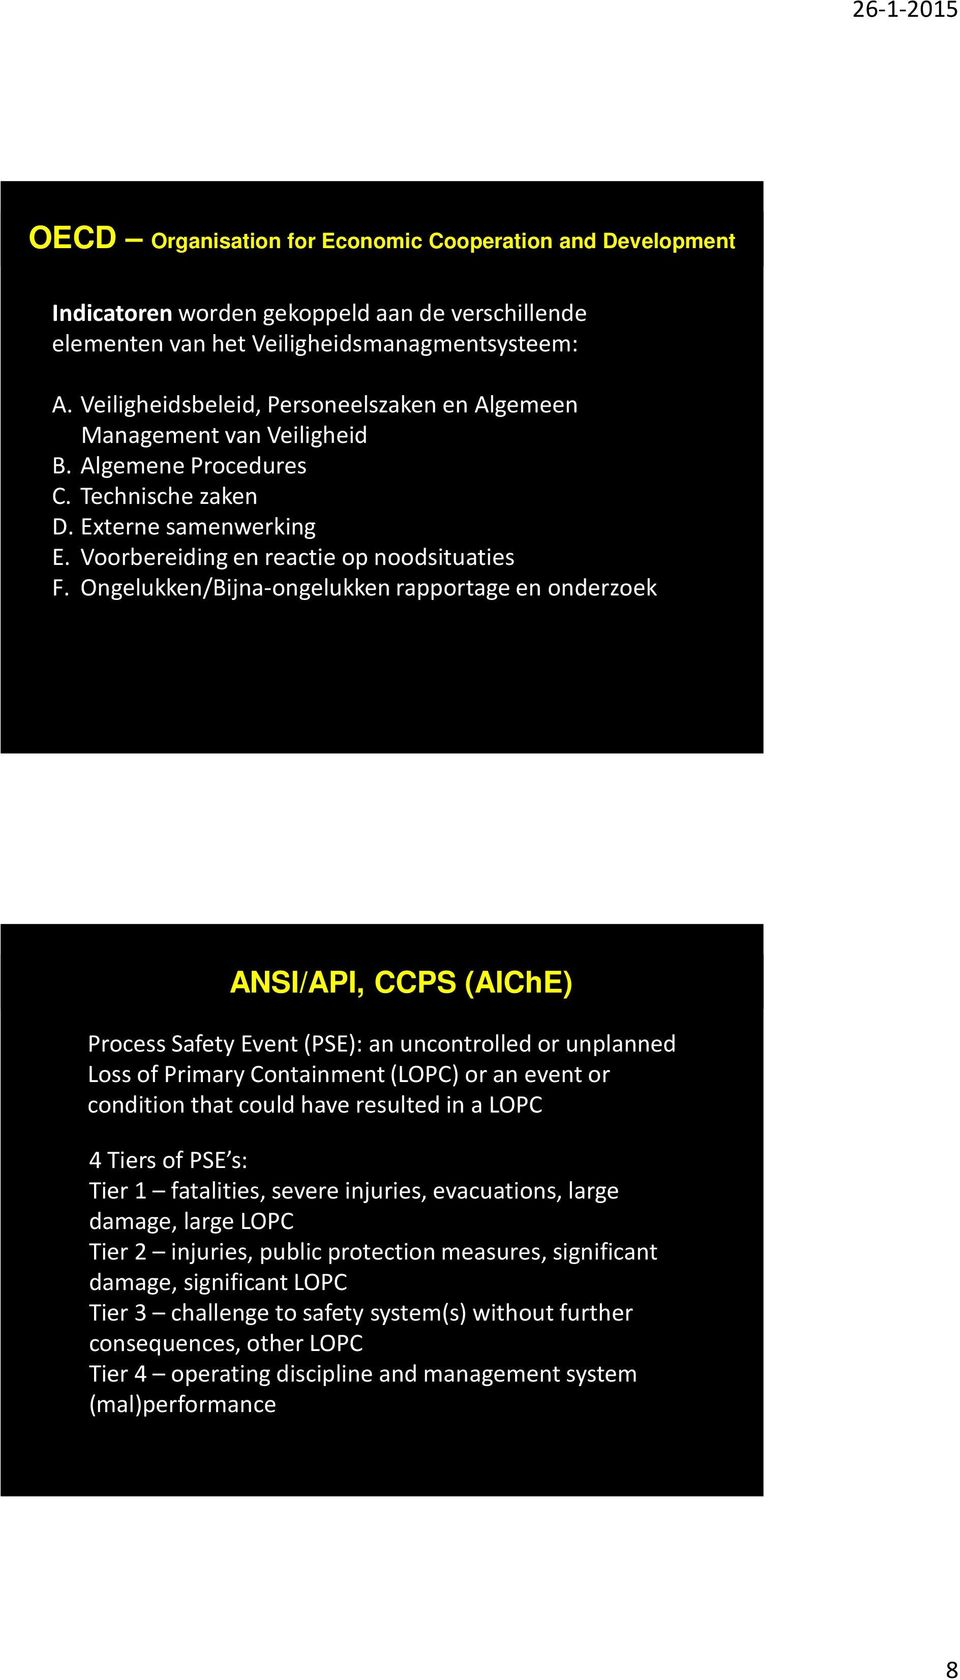 Ongelukken/Bijna-ongelukken rapportage en onderzoek ANSI/API, CCPS (AIChE) Process Safety Event (PSE): an uncontrolled or unplanned Loss of Primary Containment (LOPC) or an event or condition that